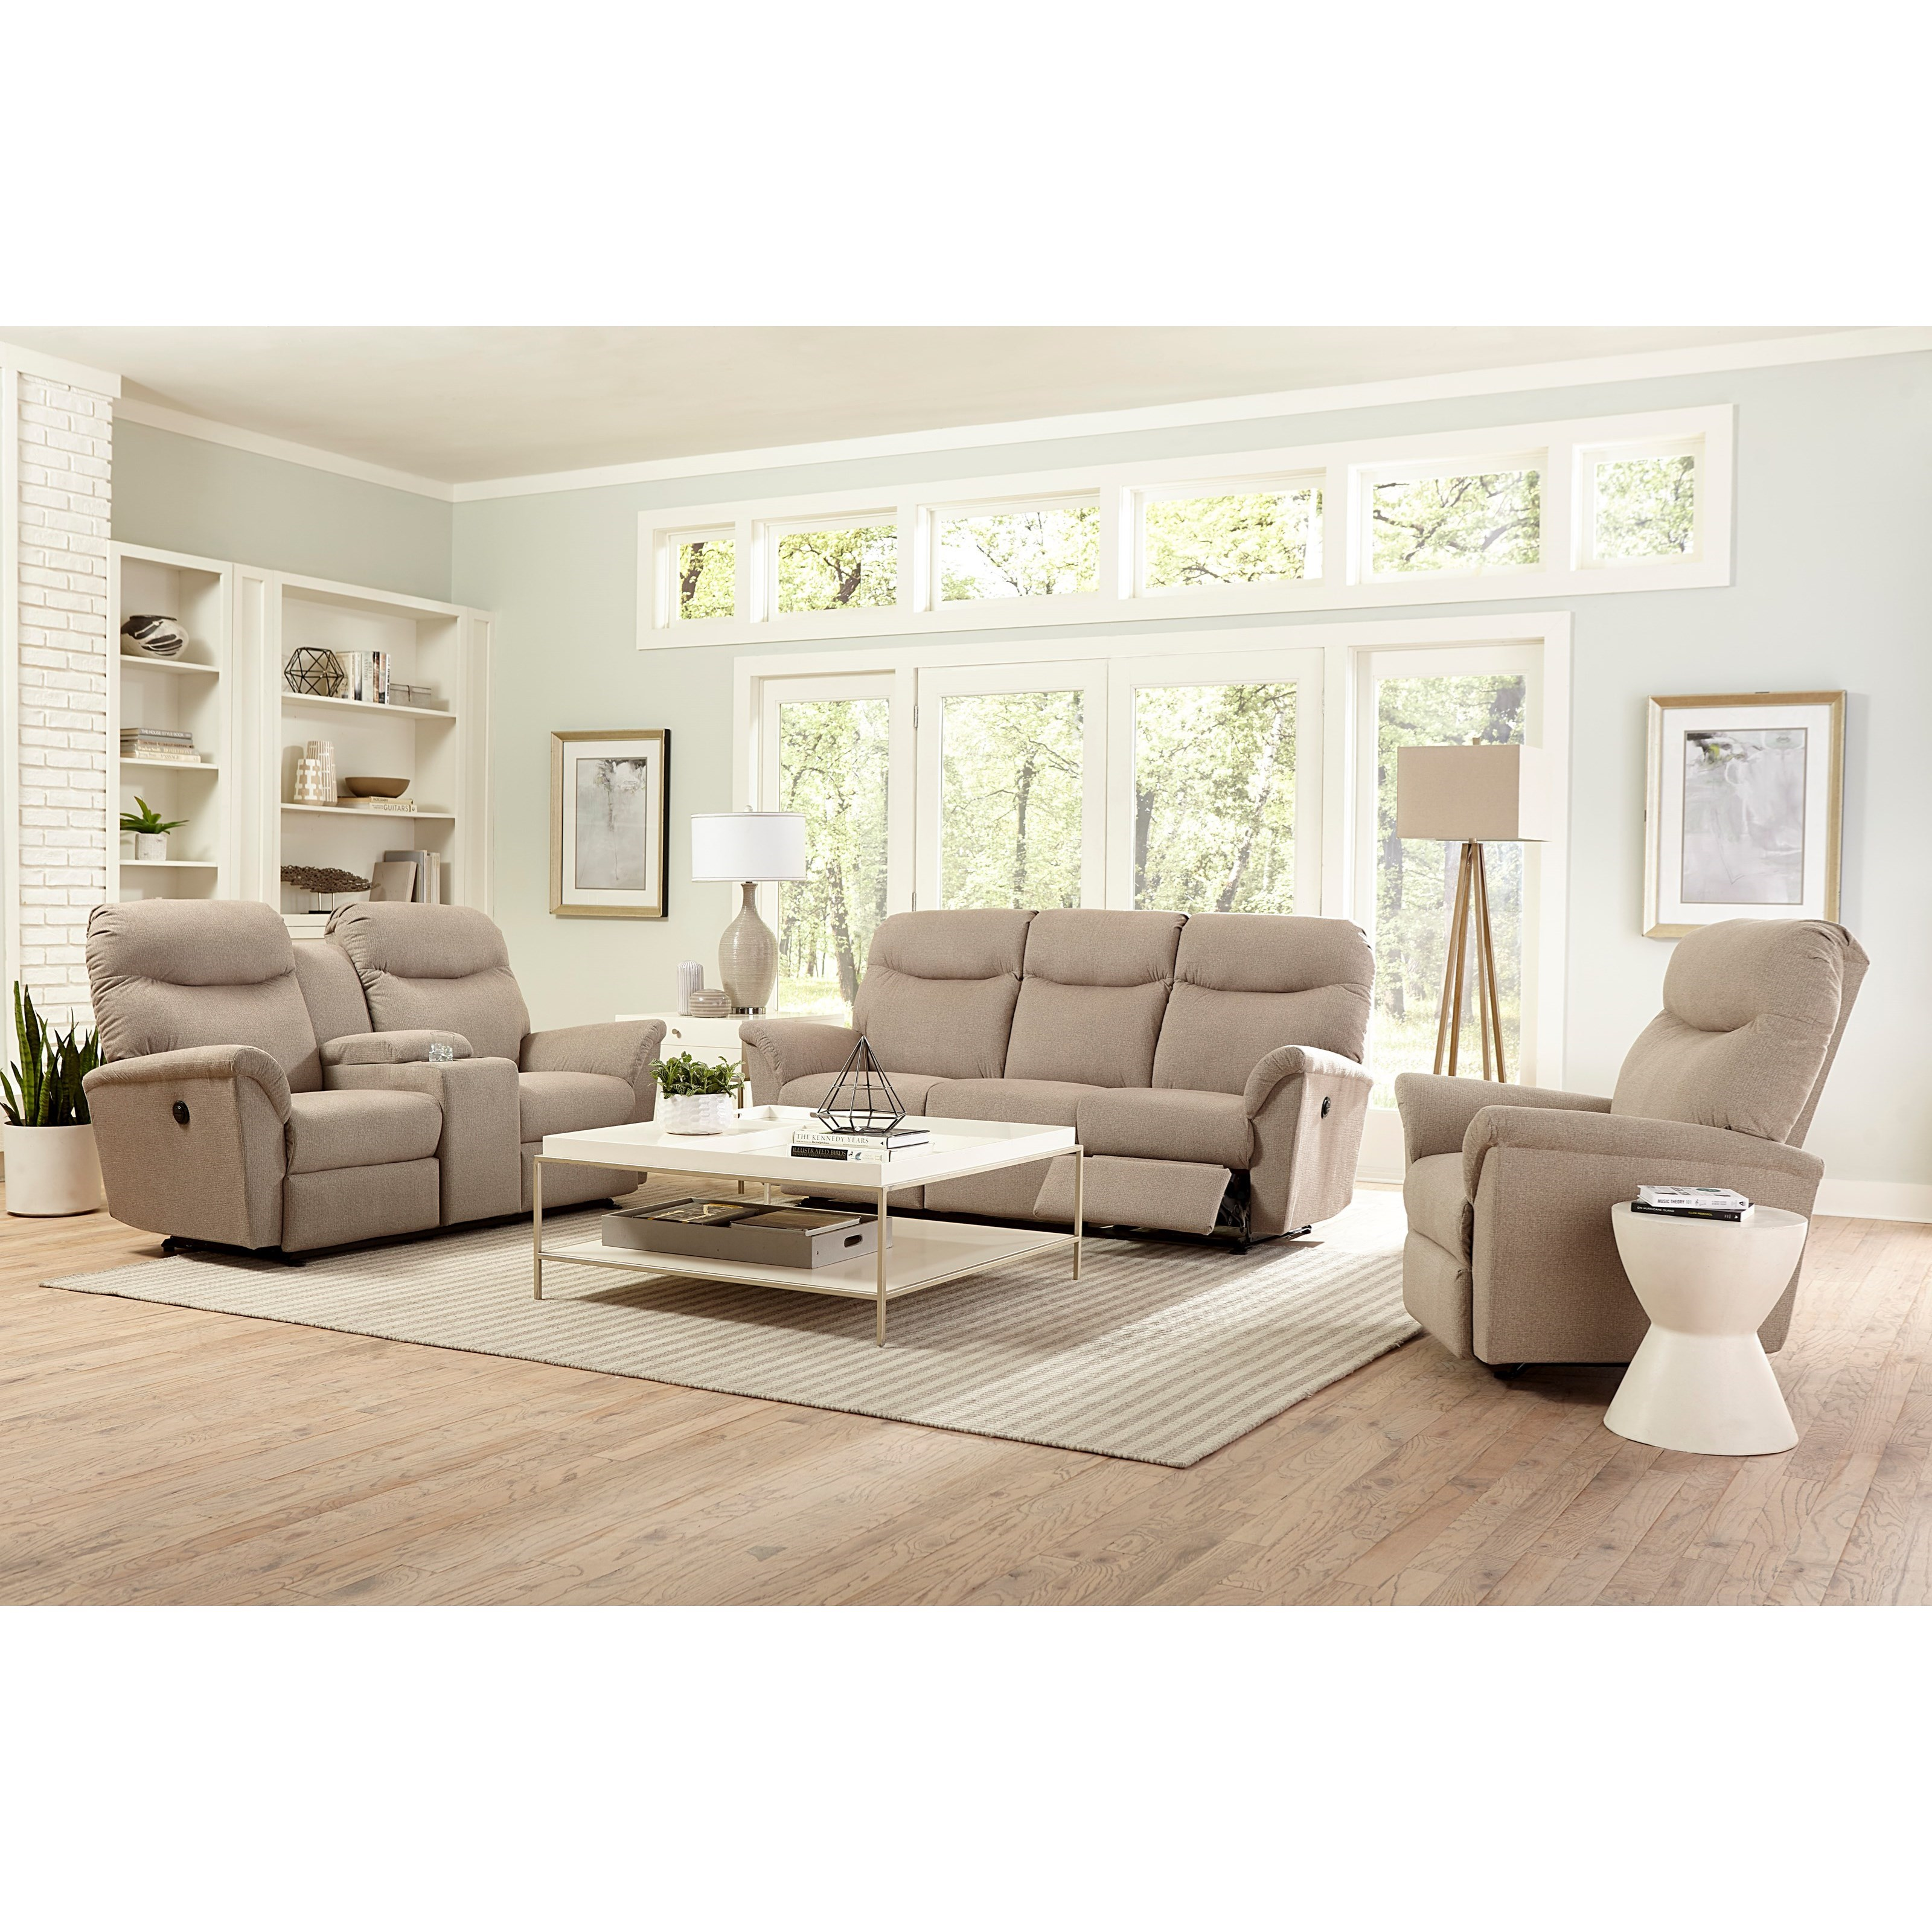 Best Home Furnishings Caitlin Casual Reclining Space Saver